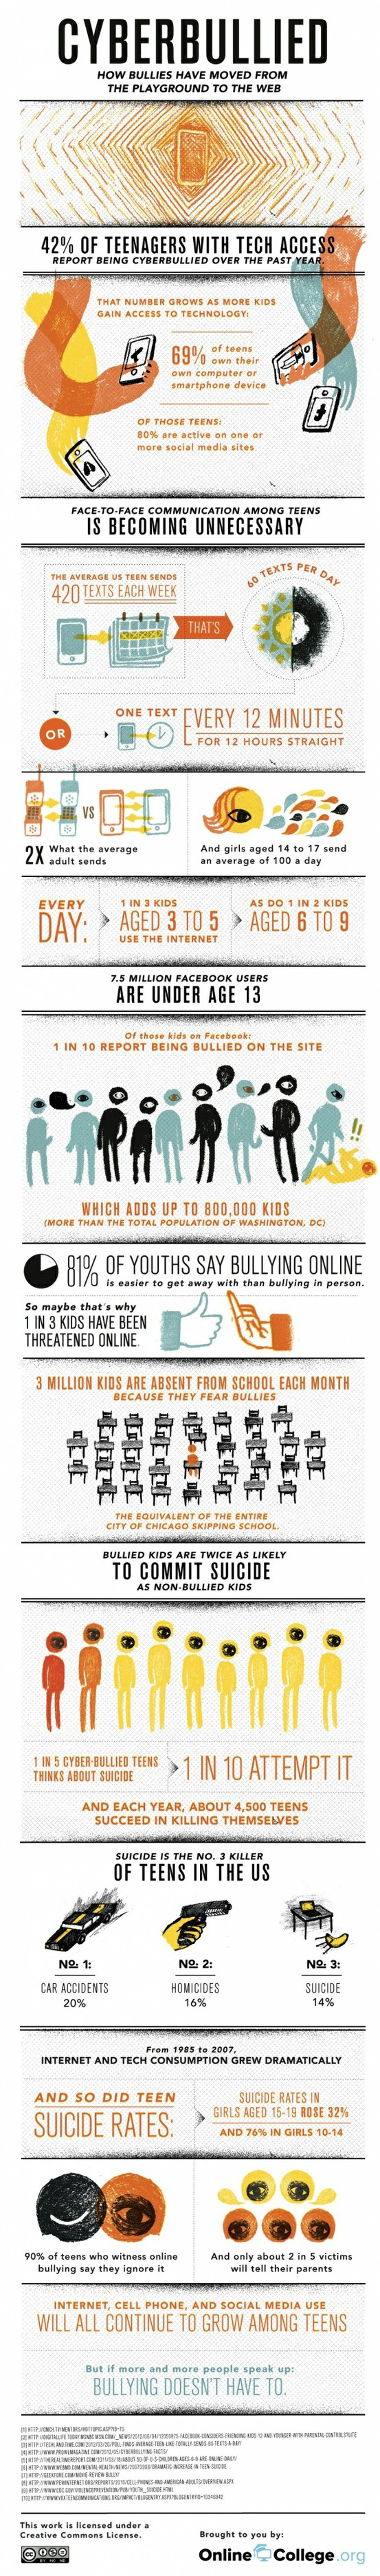 Cyber Bullies on the Rise